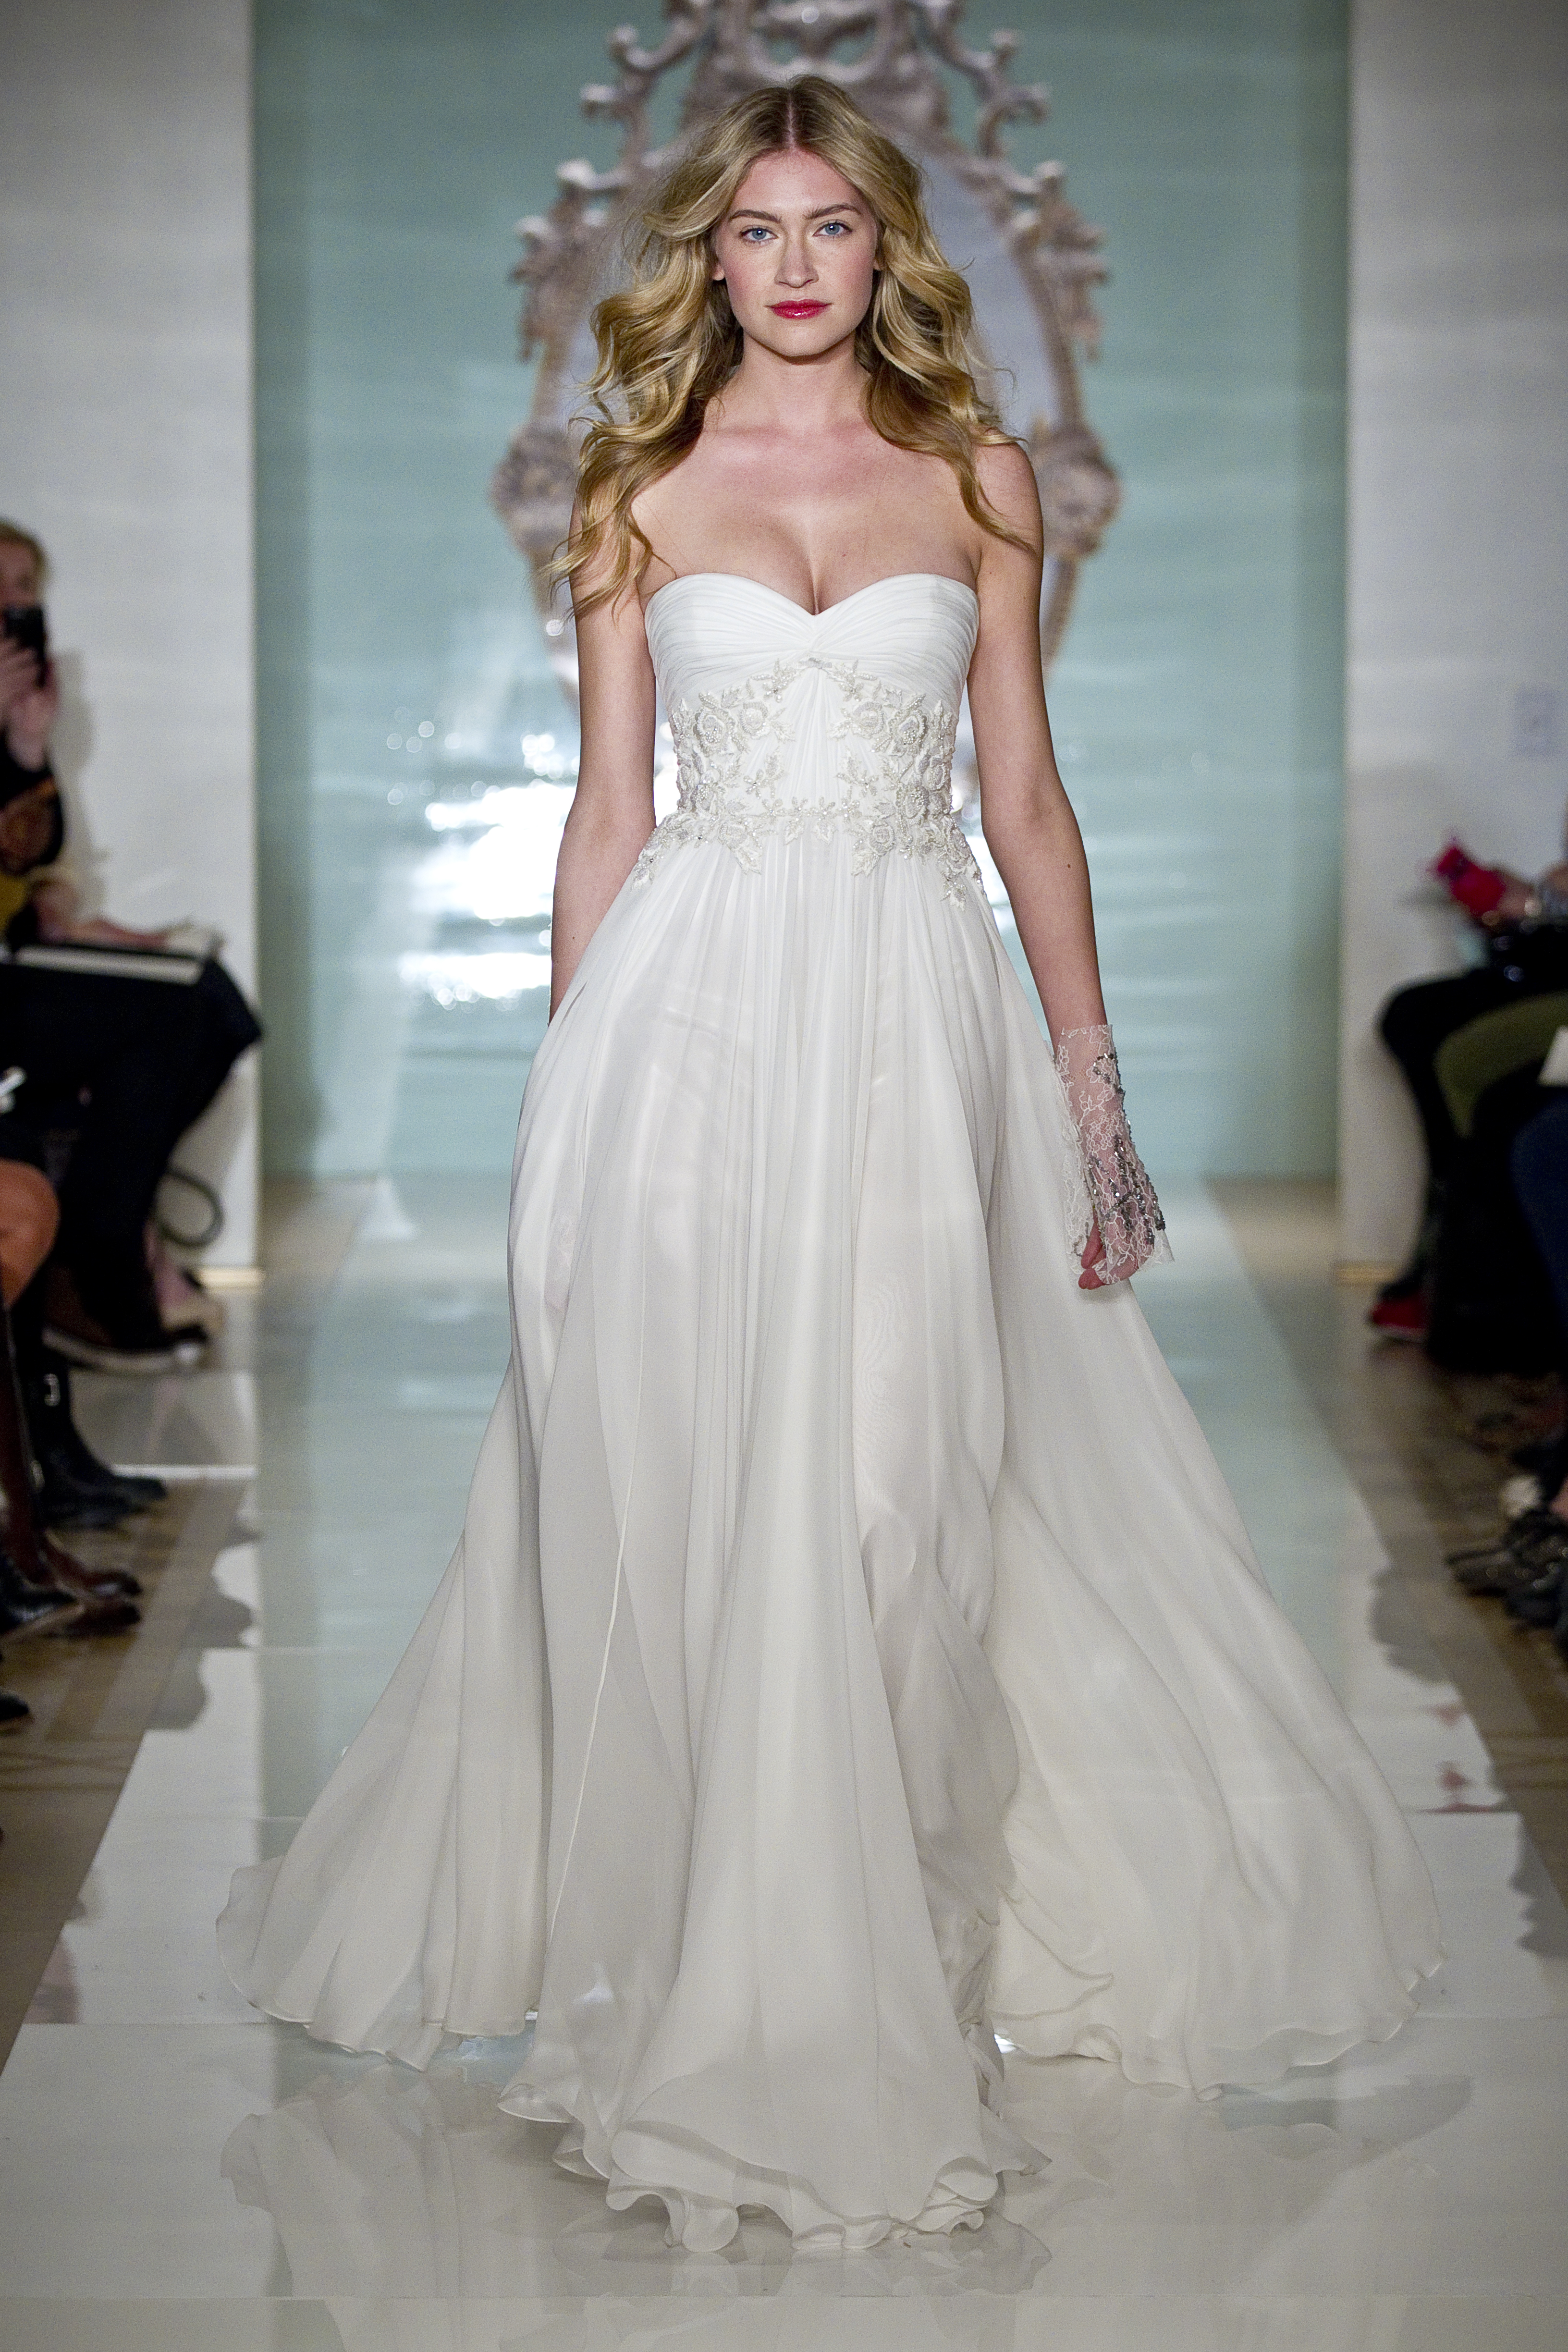 Pride and Passion: In Pursuit of the Perfect Bridal Gown - Indonesia ...